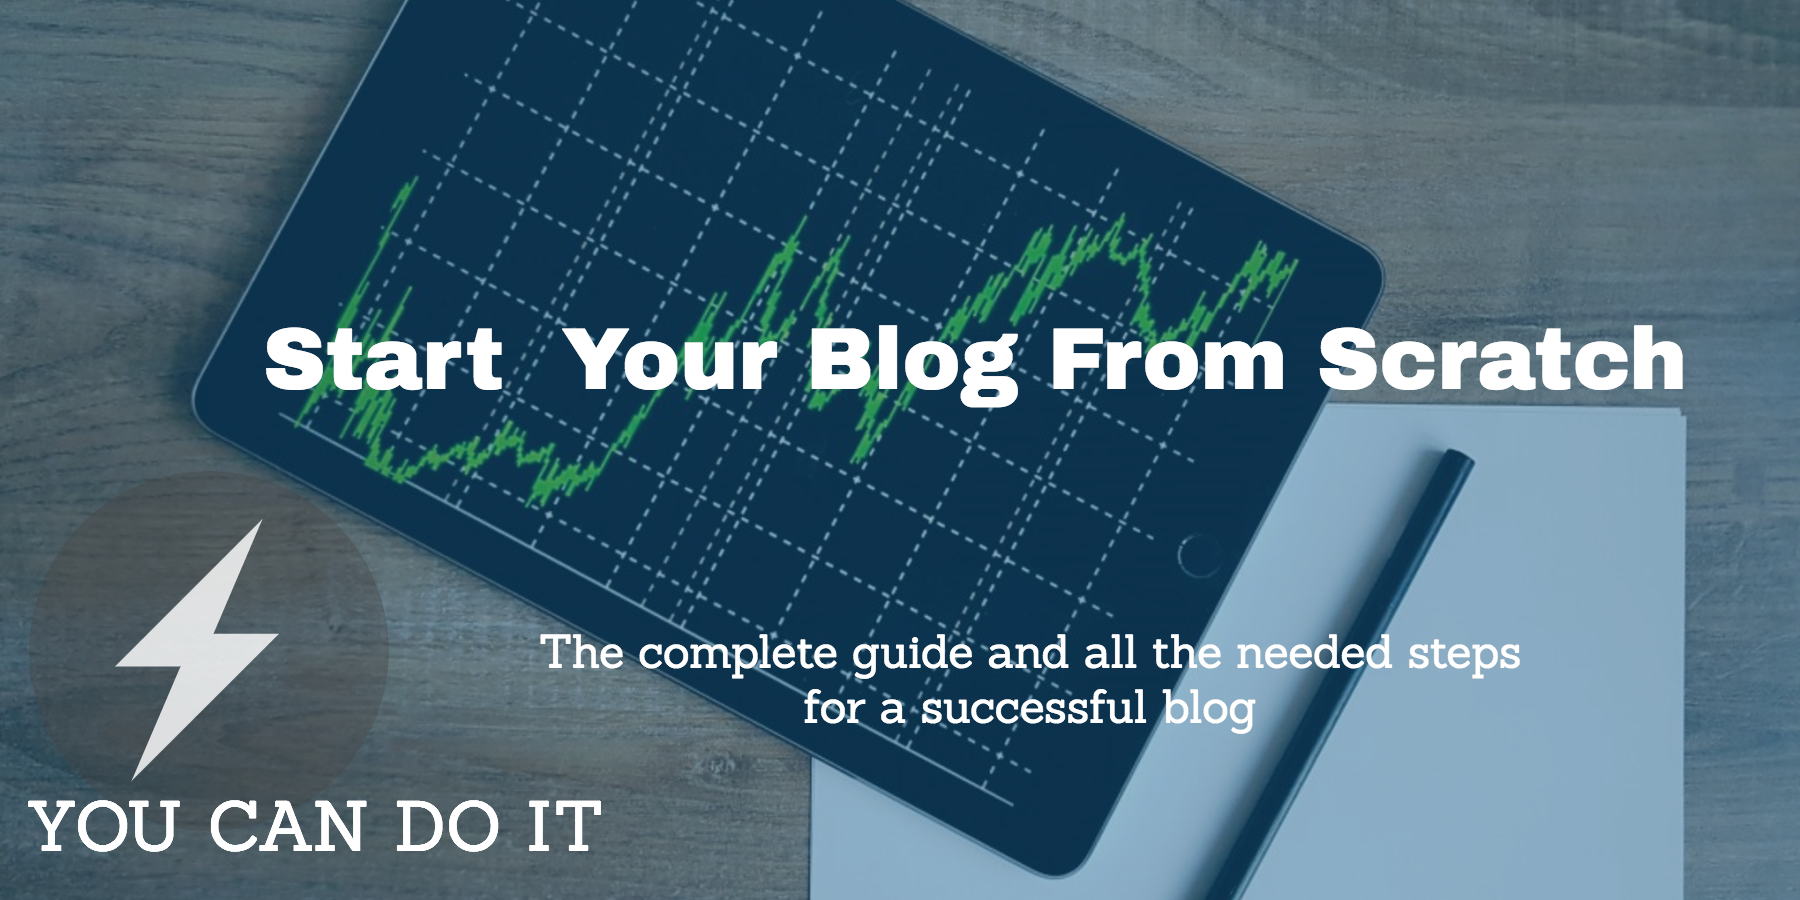 You can start your blog